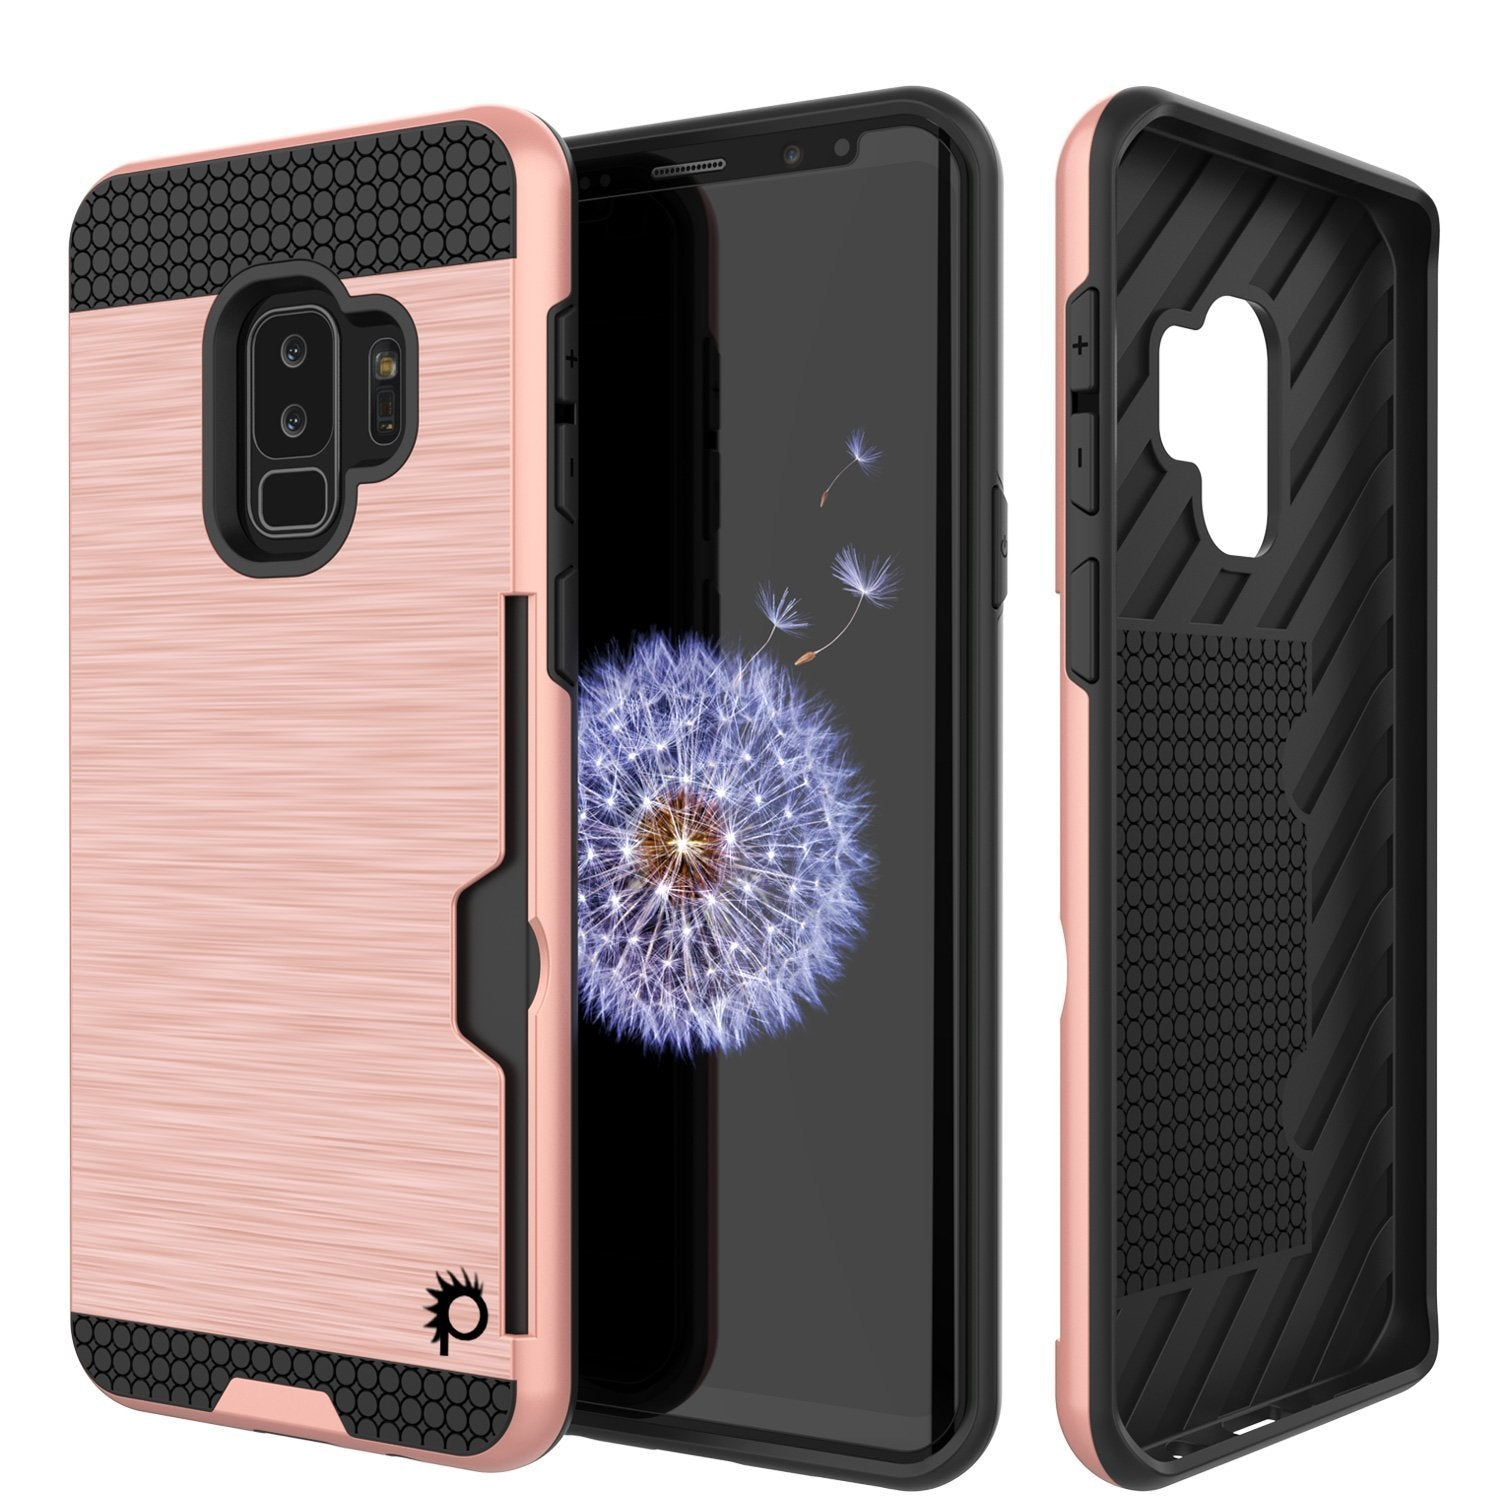 Galaxy S9 Plus Case, PUNKcase [SLOT Series] [Slim Fit] Dual-Layer Armor Cover w/Integrated Anti-Shock System, Credit Card Slot  [Rose Gold]